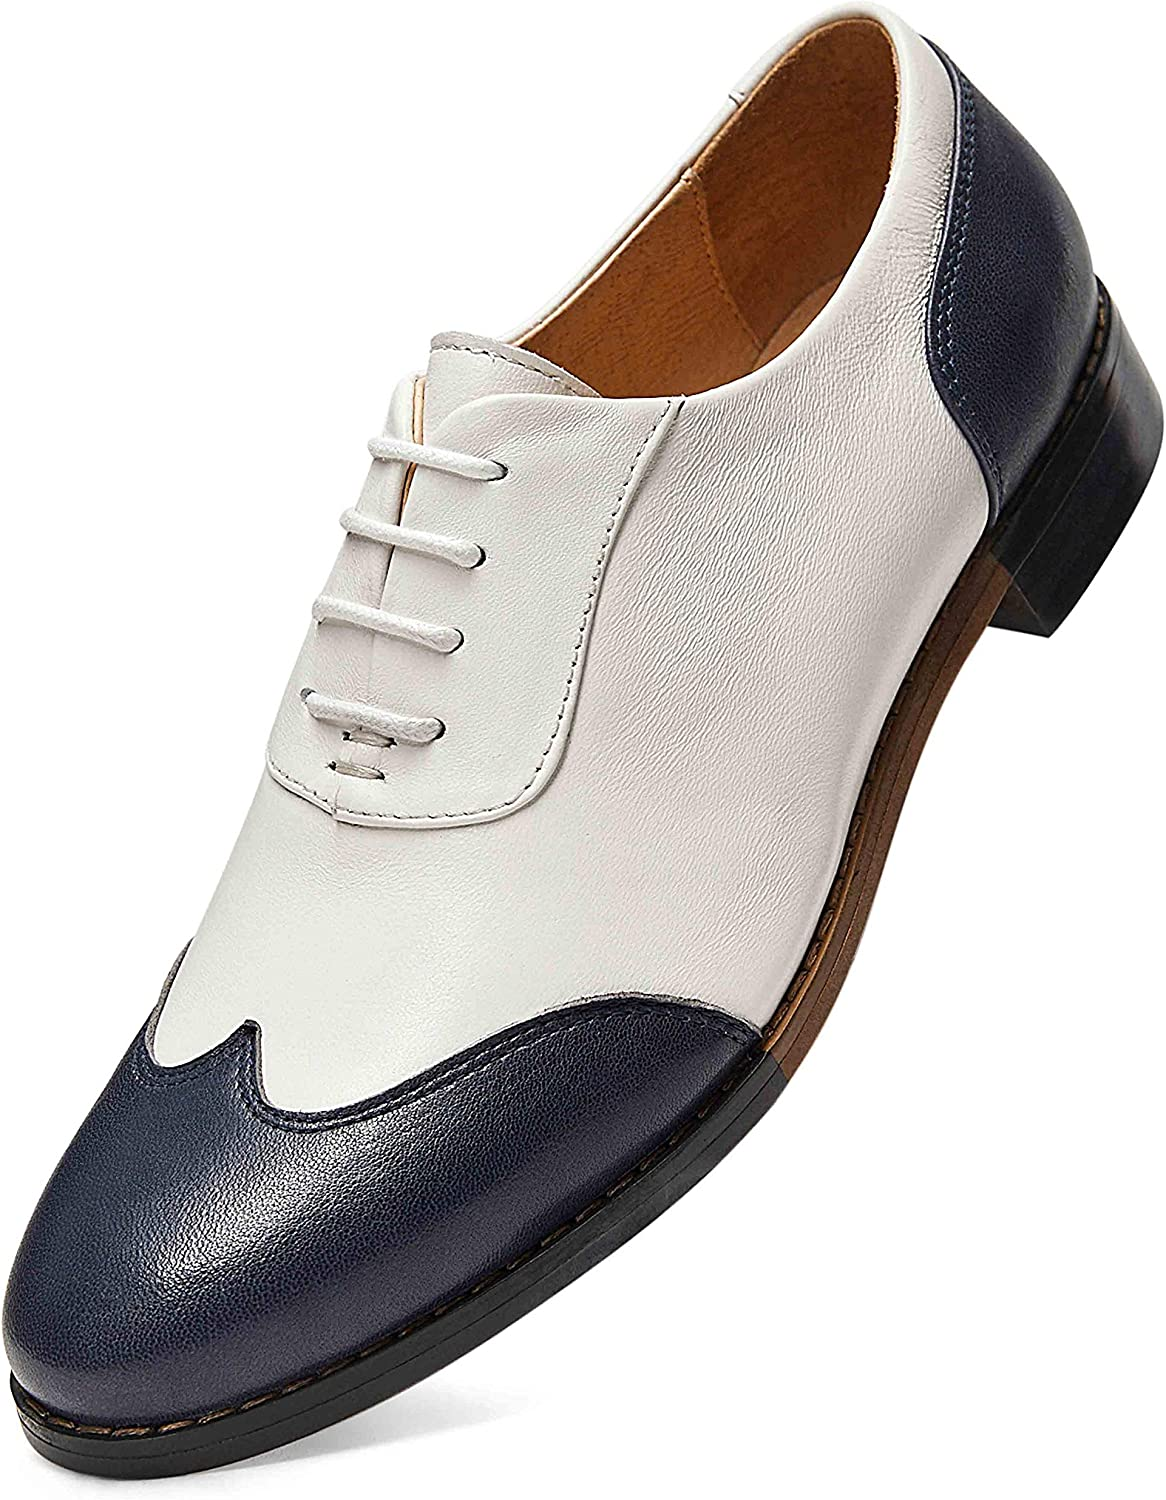 Amazon.com | FRASOICUS Women's Oxfords Brogue Leather Wingtip Lace up Flats  Formal Wedding Dress Shoes for Girls Ladies | Oxfords